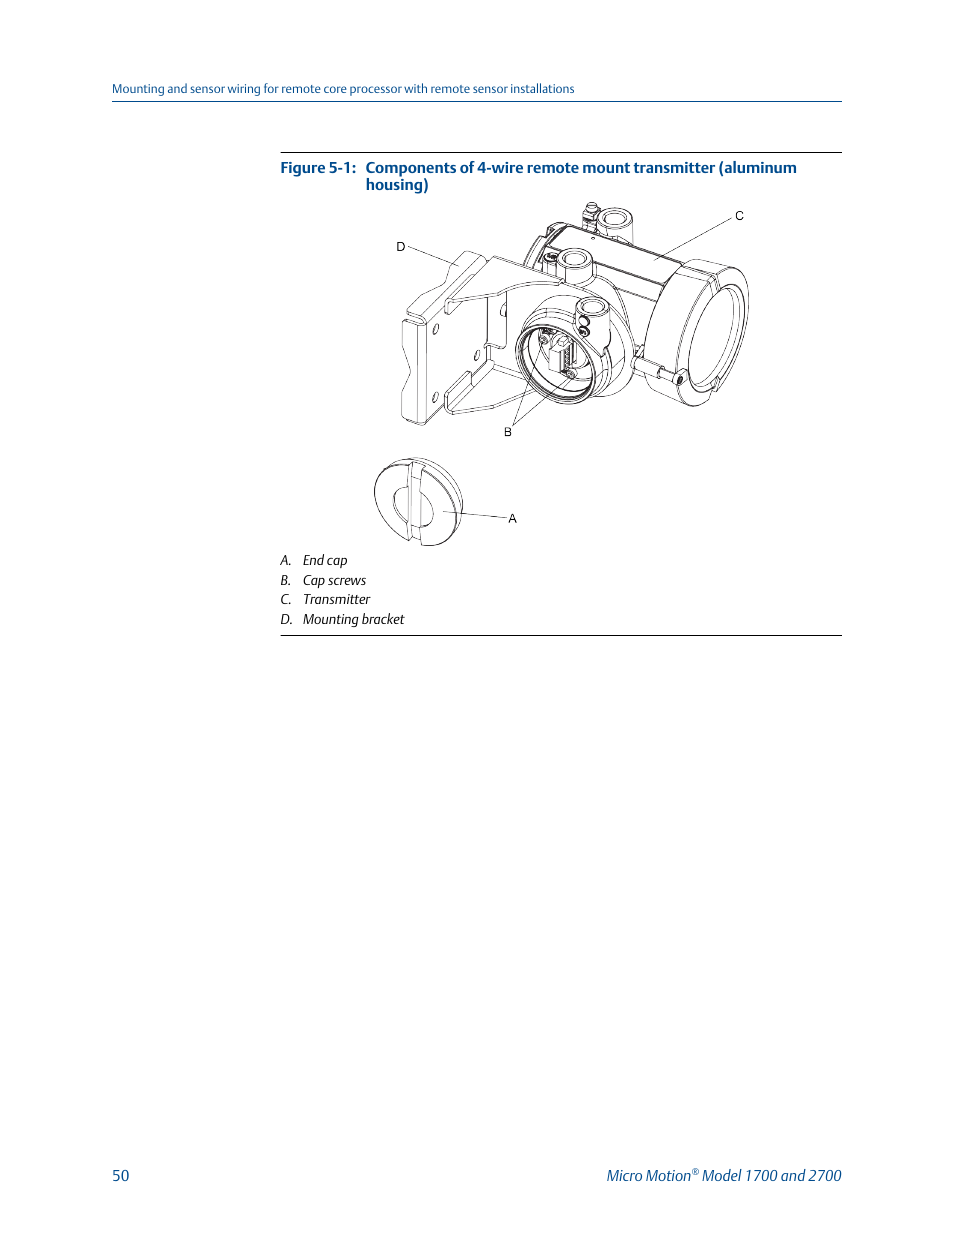 emerson micro motion 1700 page54 emerson micro motion 1700 user manual page 54 124 also for